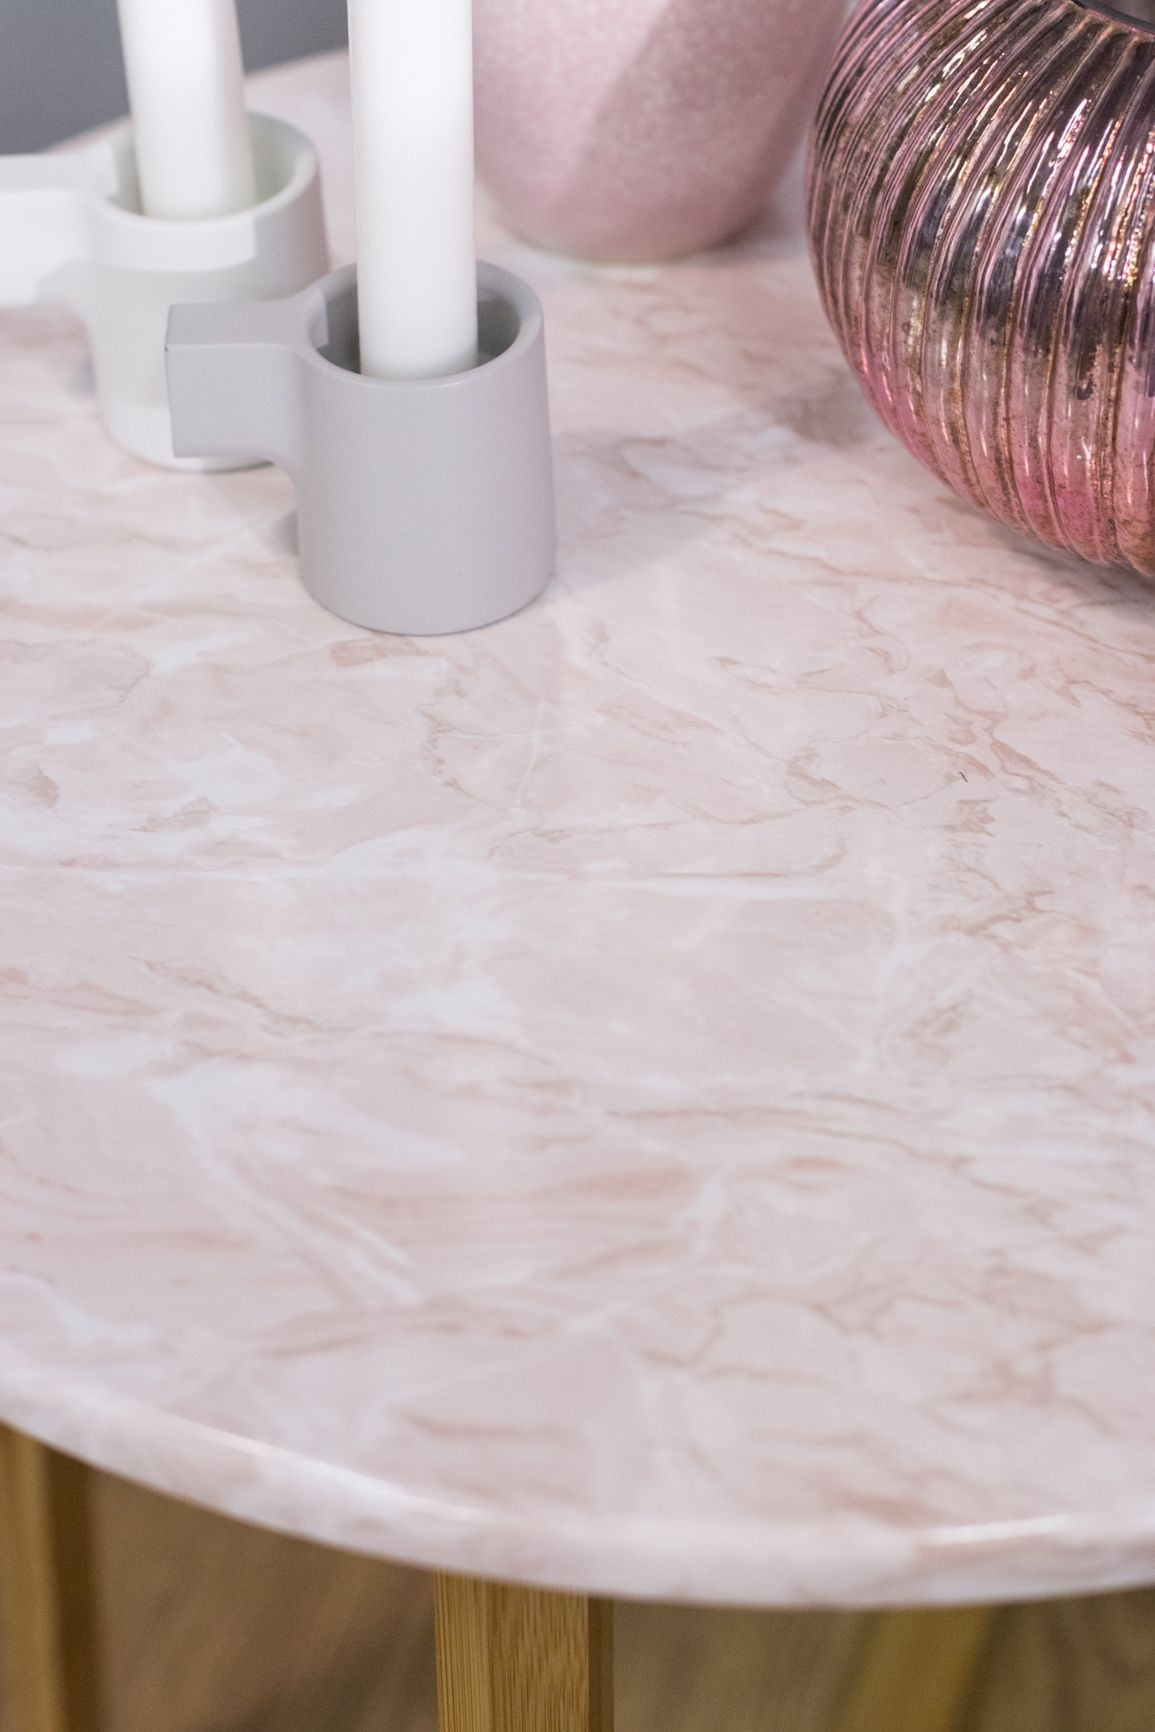 alkor stone marble tiles sticky back plastic designs are perfect rh pinterest com